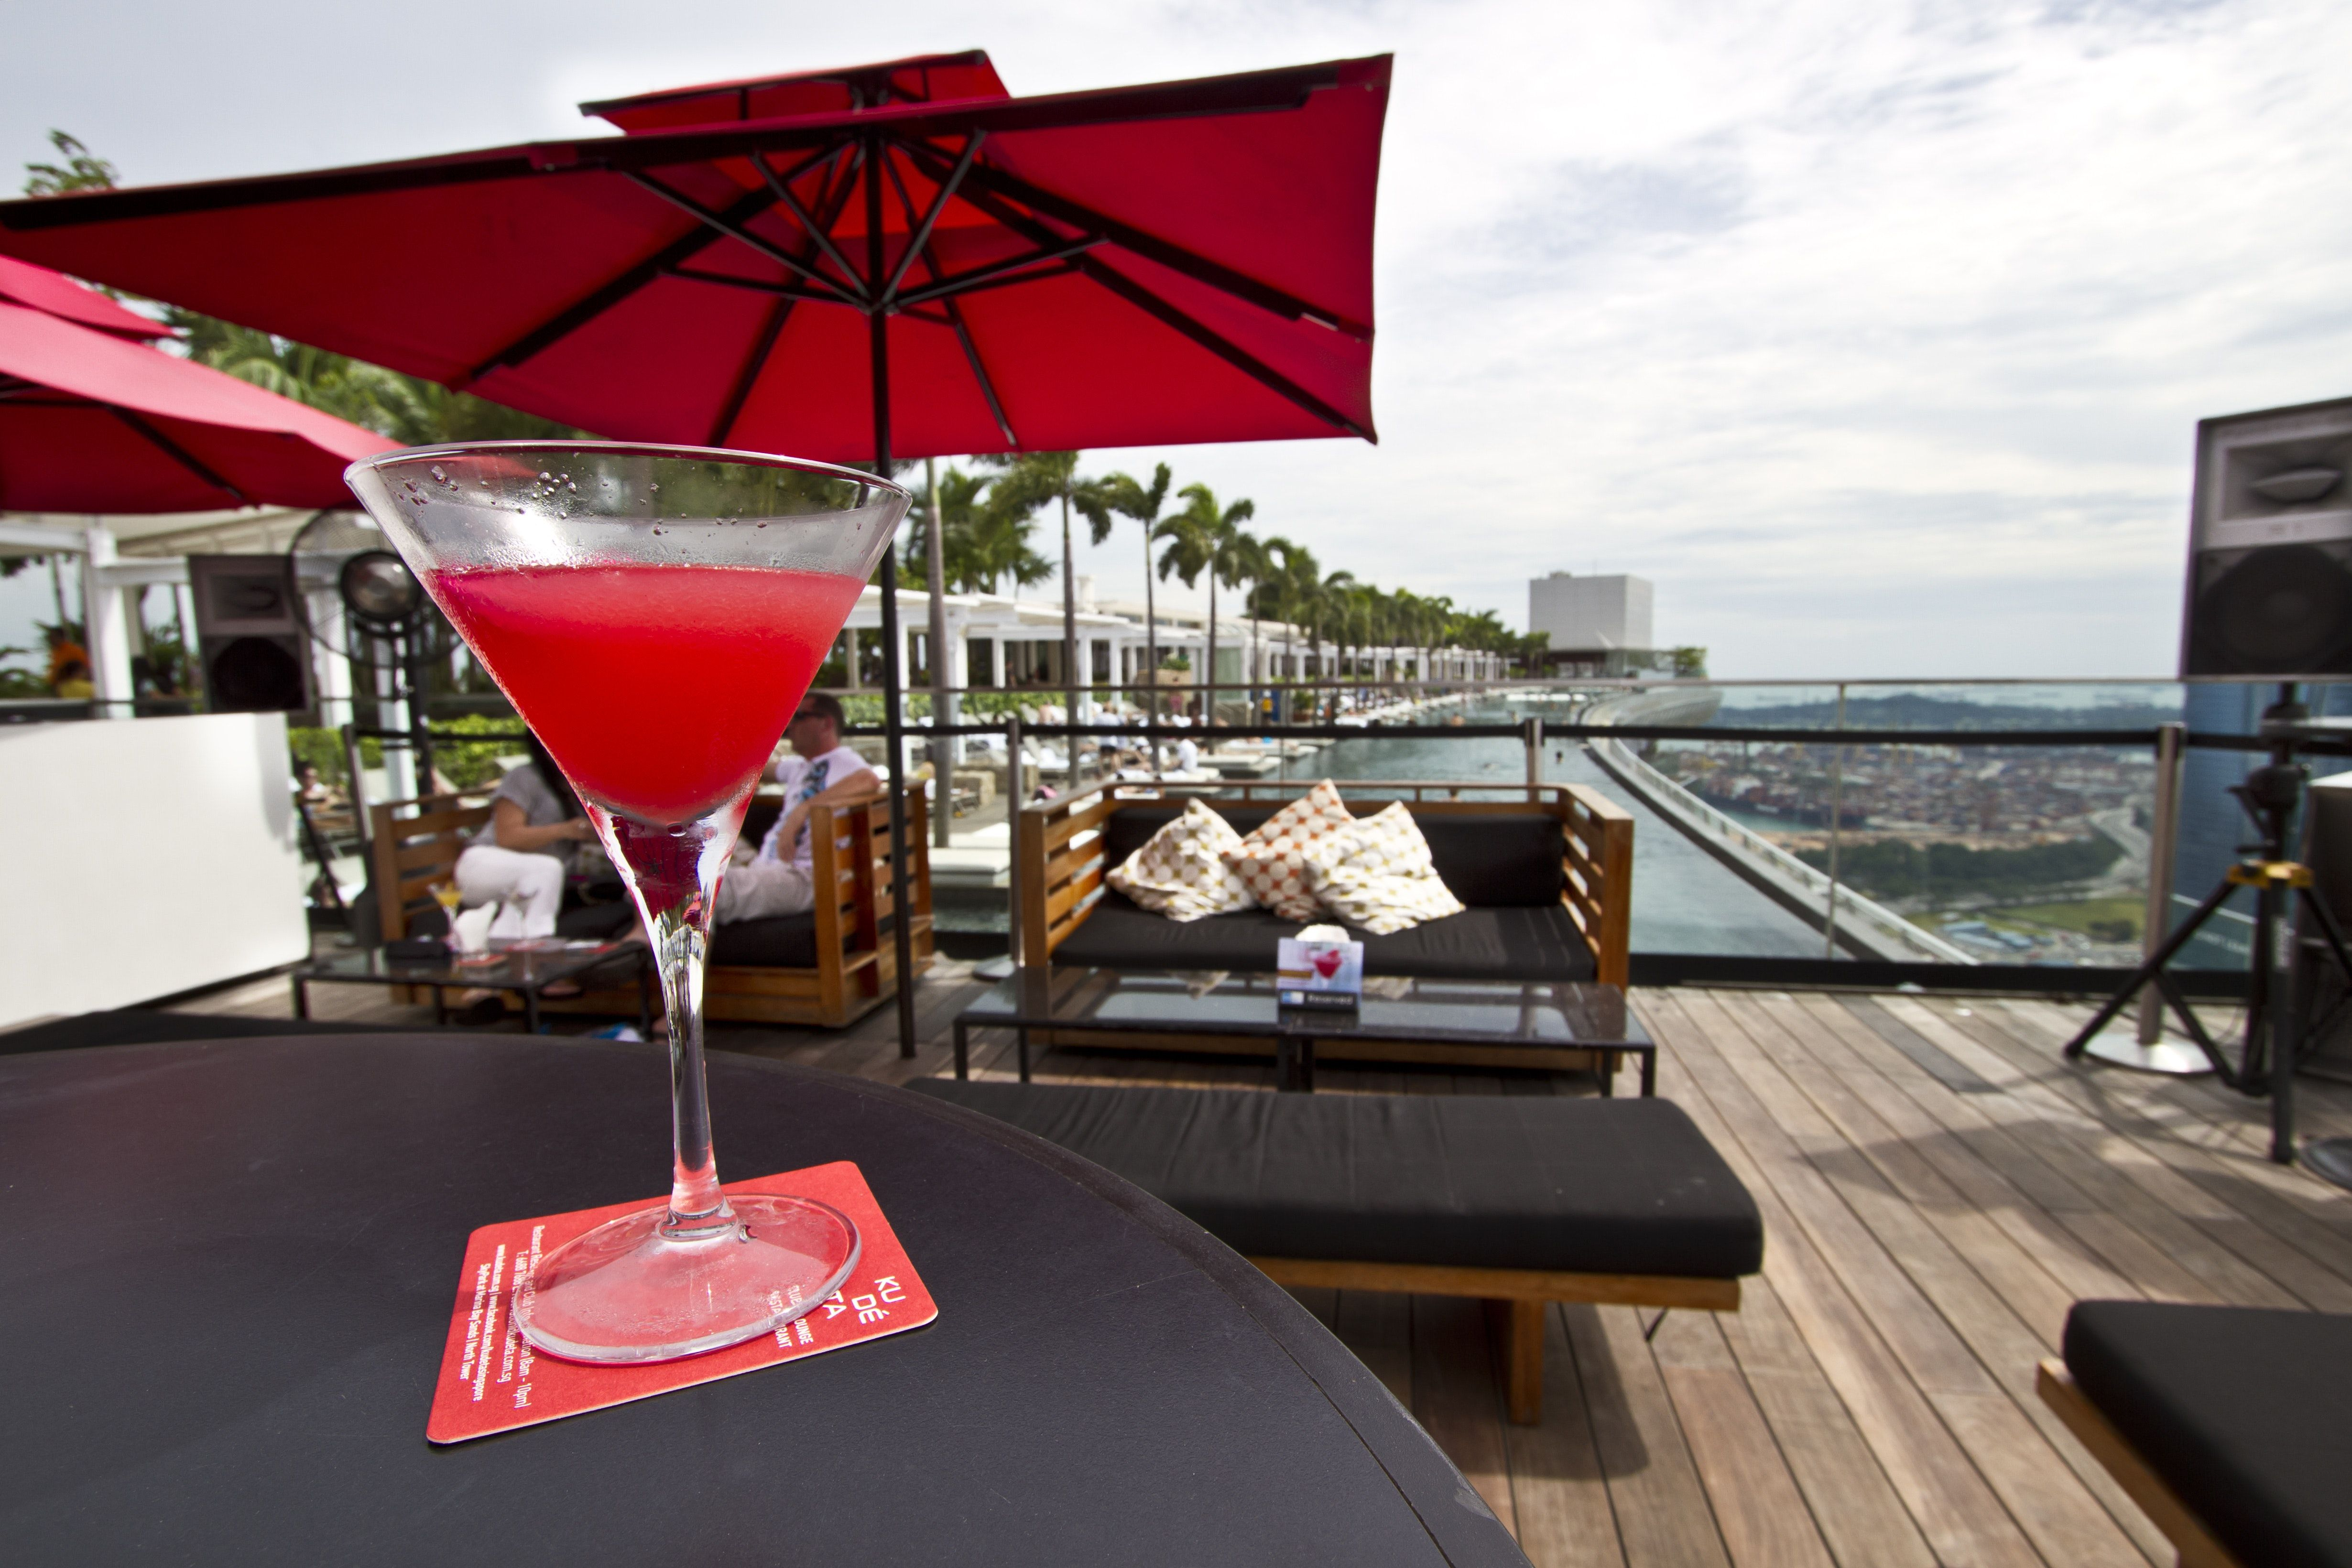 Singapore S Best Rooftop Bars And Bars With A View Rooftop Bar Best Rooftop Bars Cool Bars